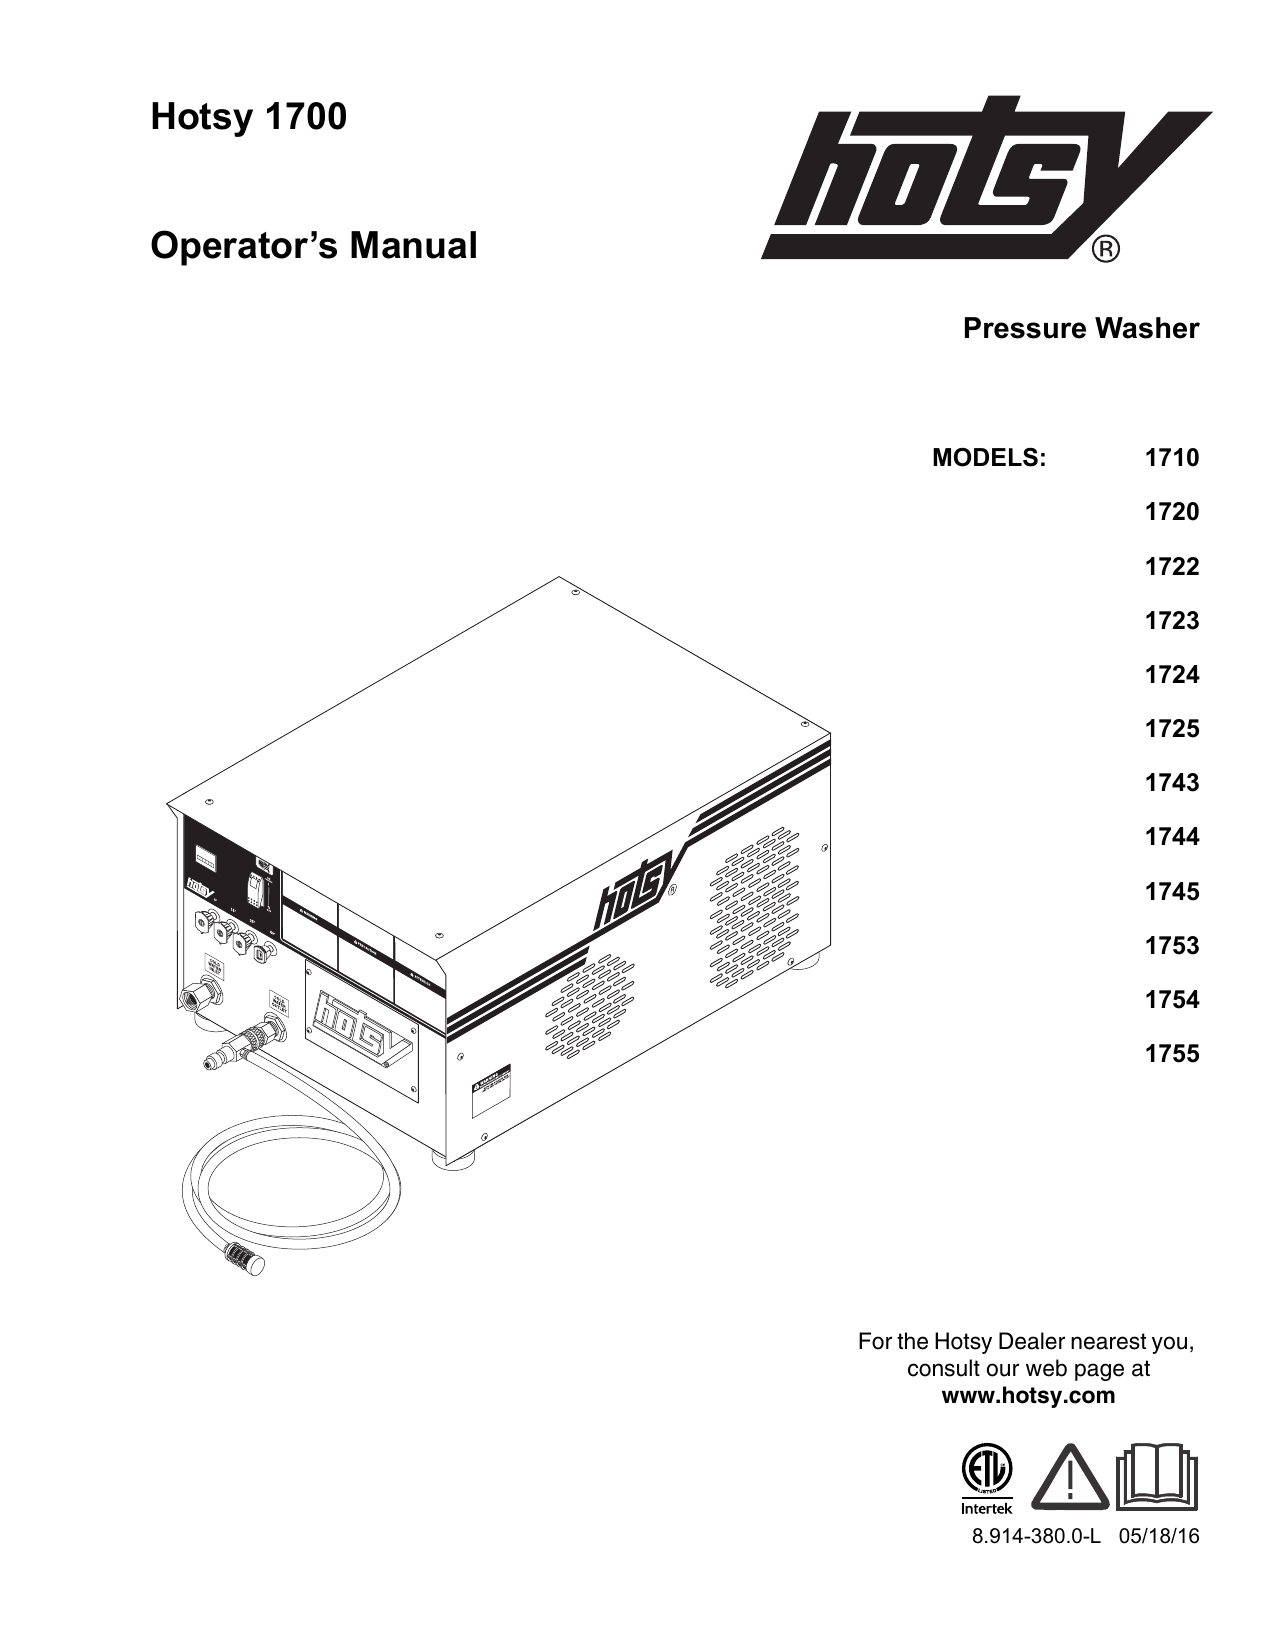 hotsy pressure washer electrical diagram